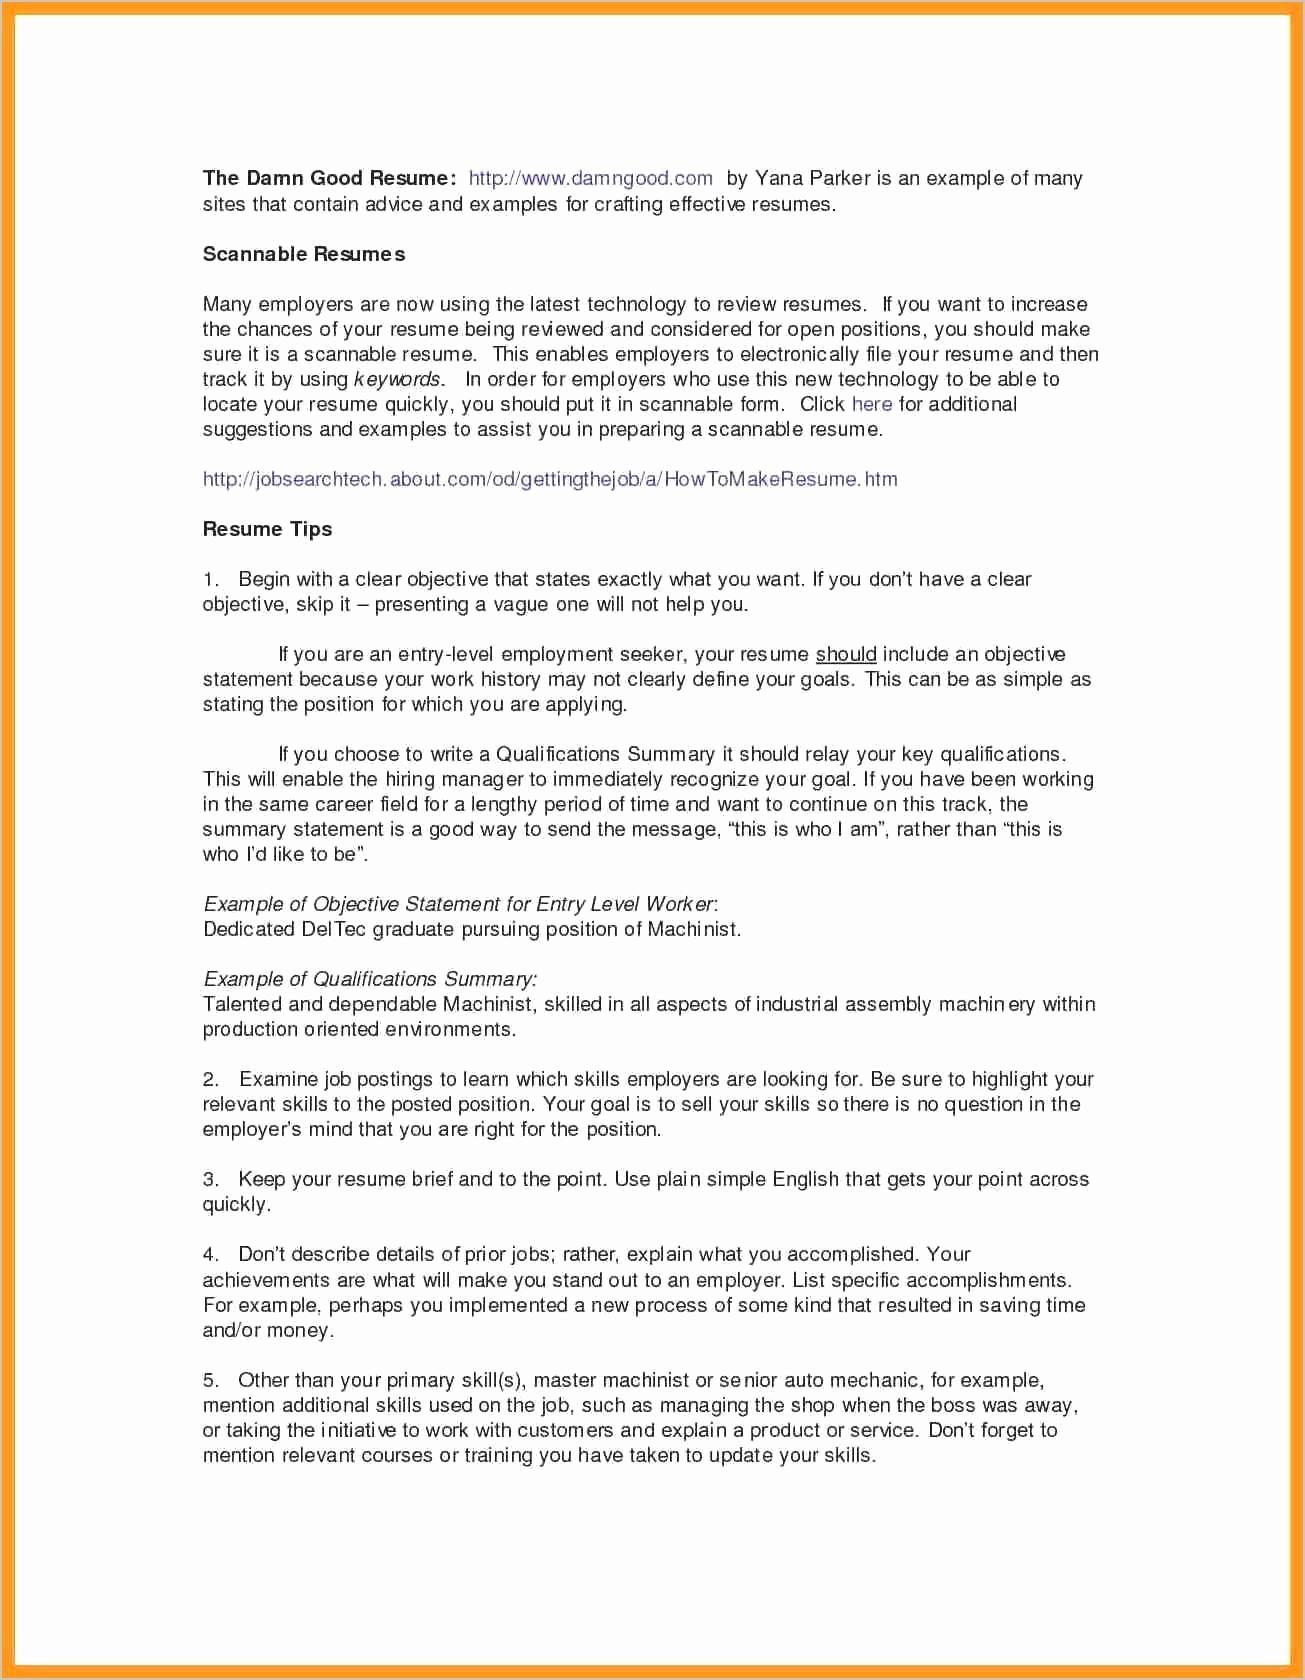 Guaranteed Resume Writing Services - Cover Letter Investment Banking Best Letter Guarantee Template